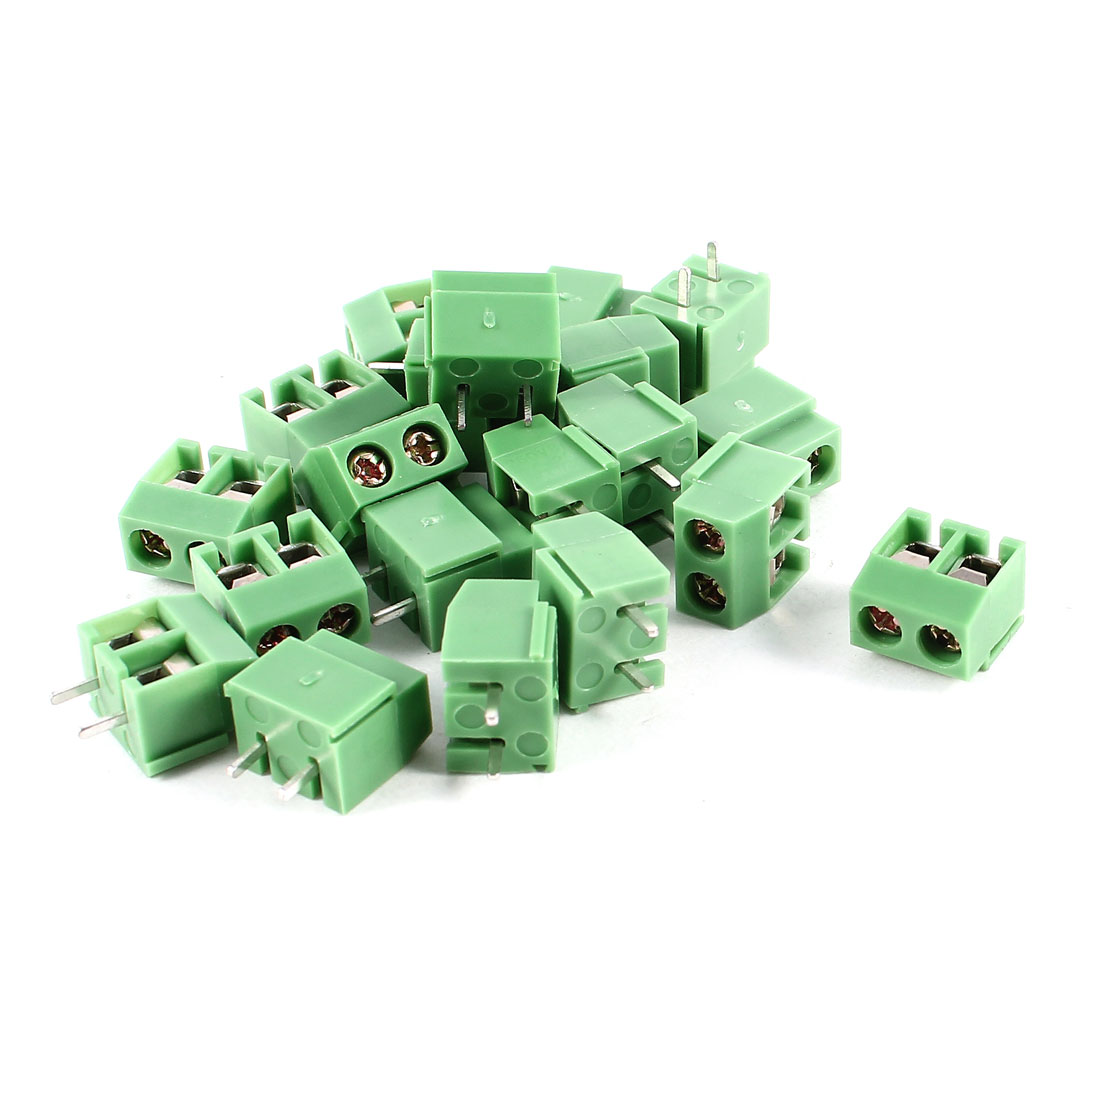 20 Pcs 2P 5mm Spacing PCB Mount Screw Terminal Block Connector 250V 8A AWG14-26